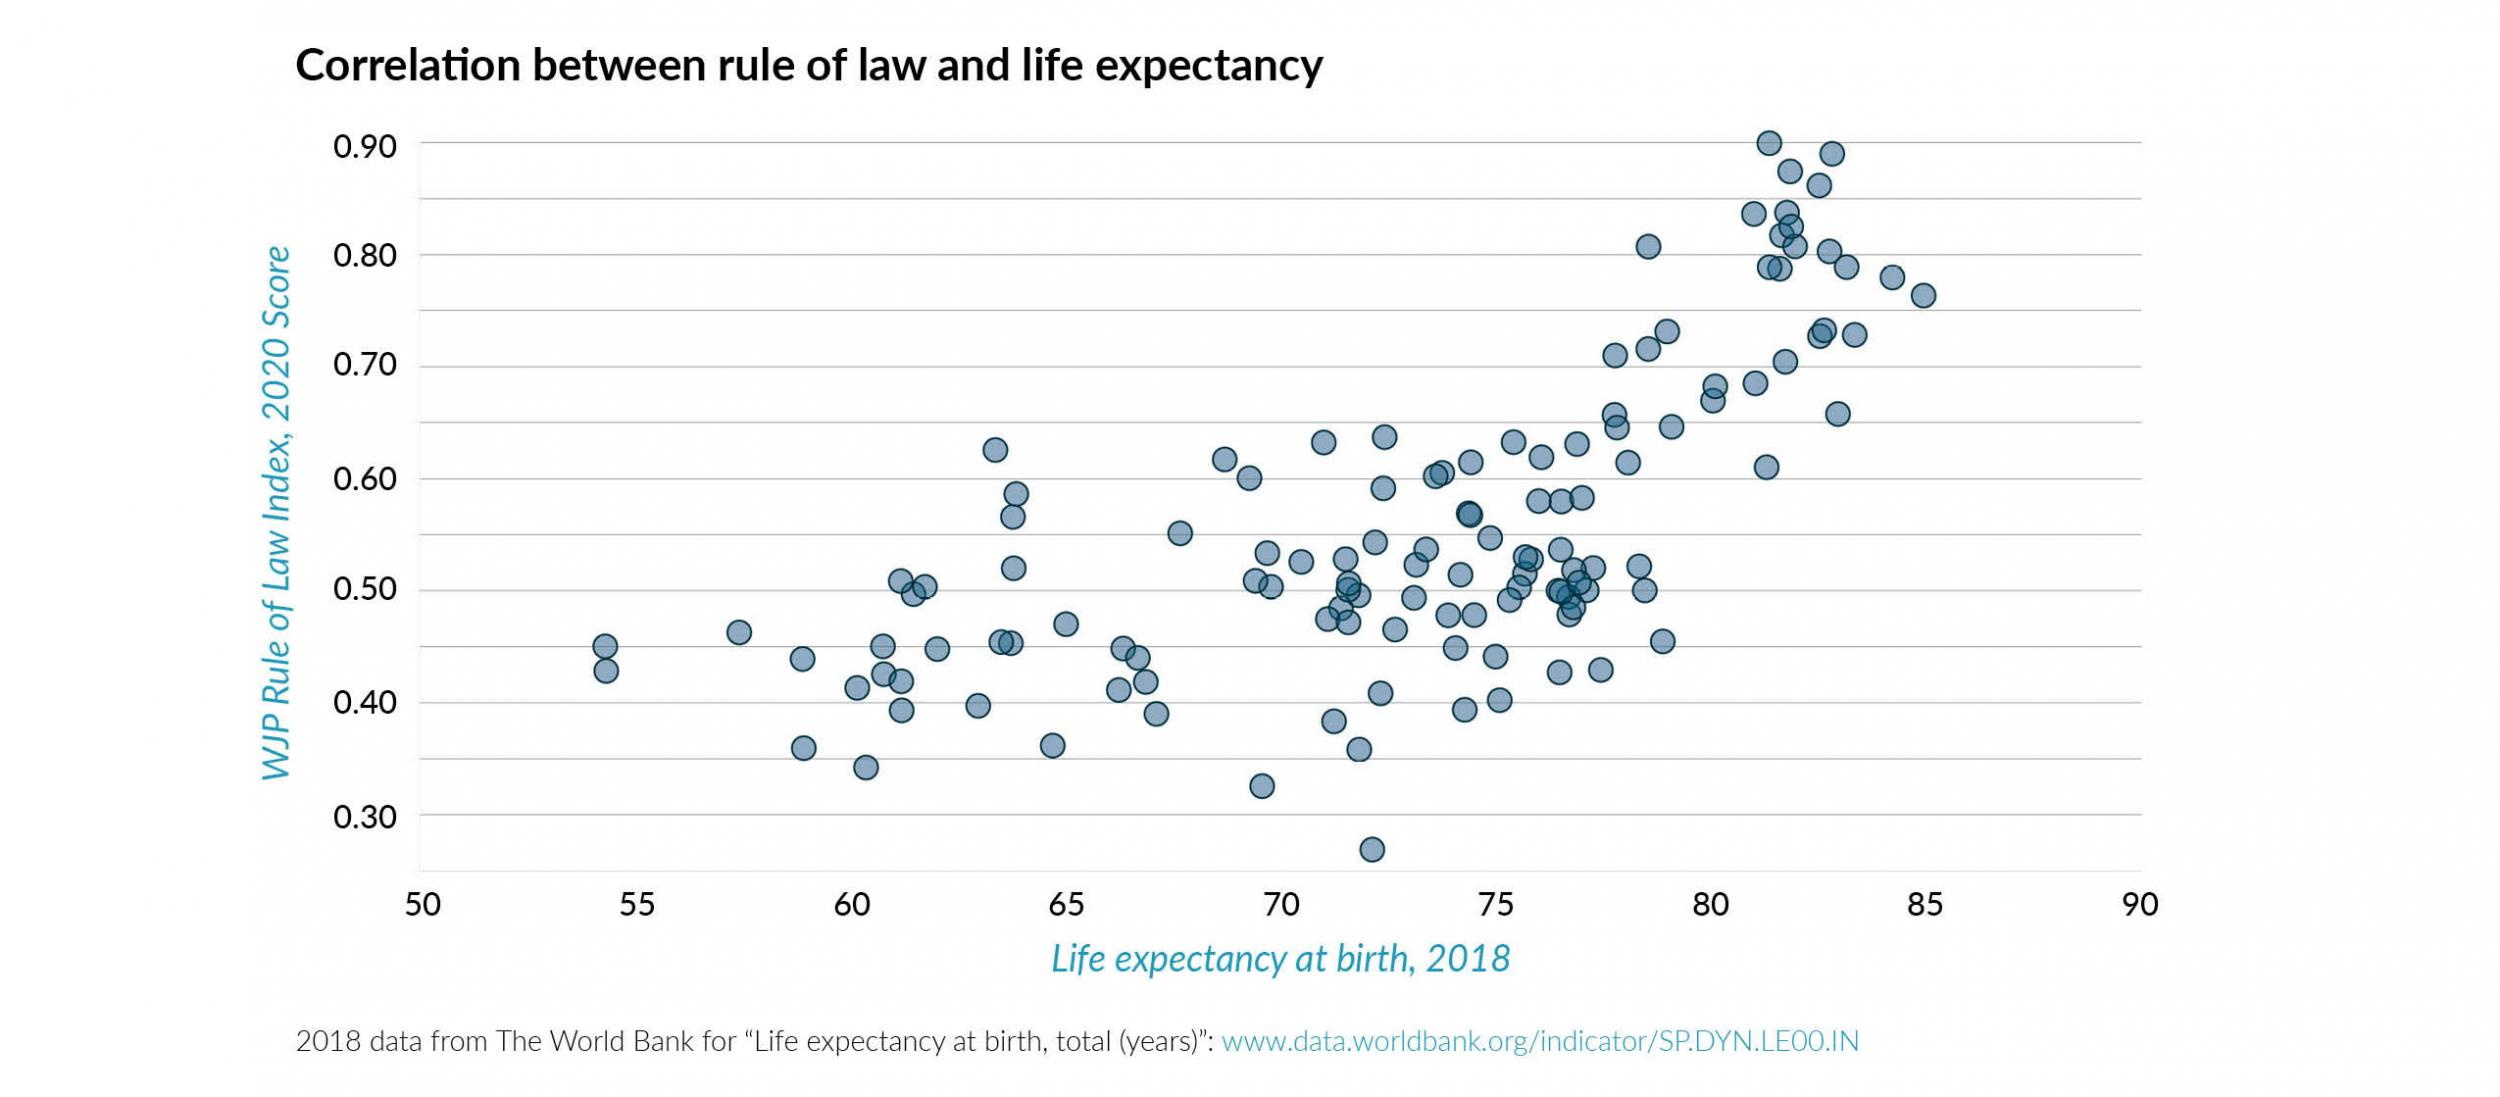 Correlation between life expectancy and rule of law